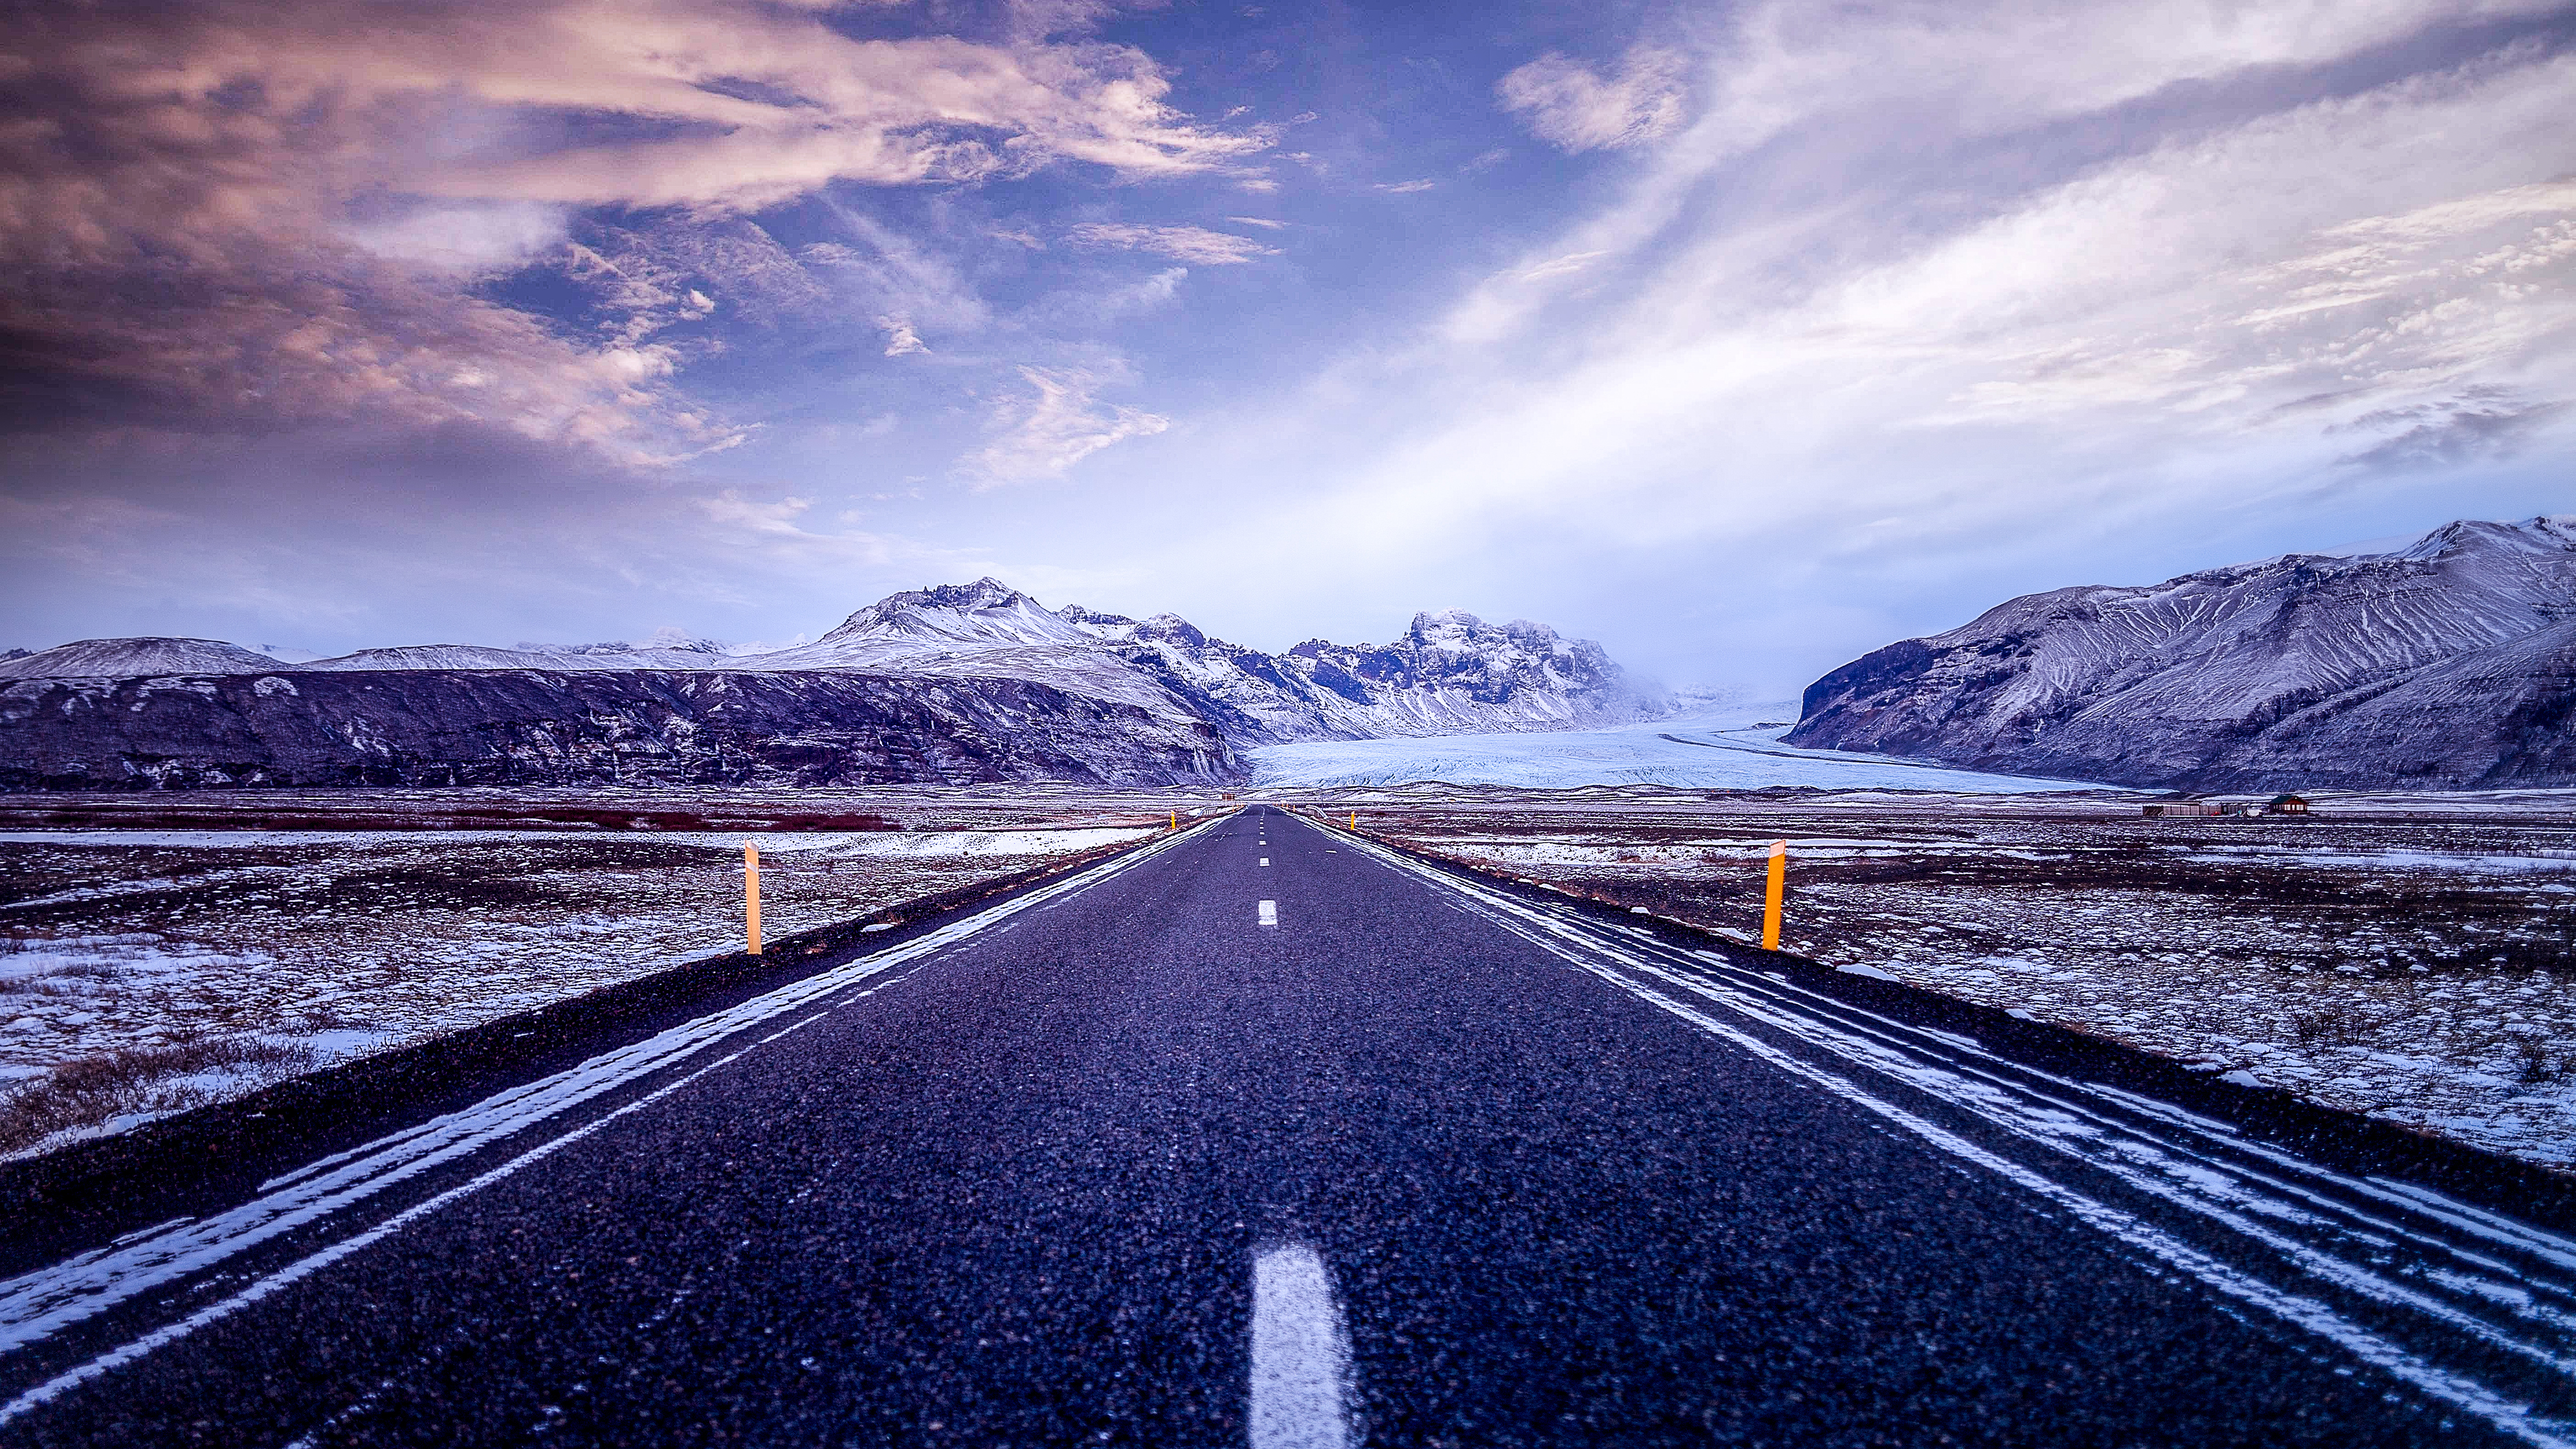 Beautiful Wallpapers For Iphone 6 Plus Road To North 4k Wallpapers Hd Wallpapers